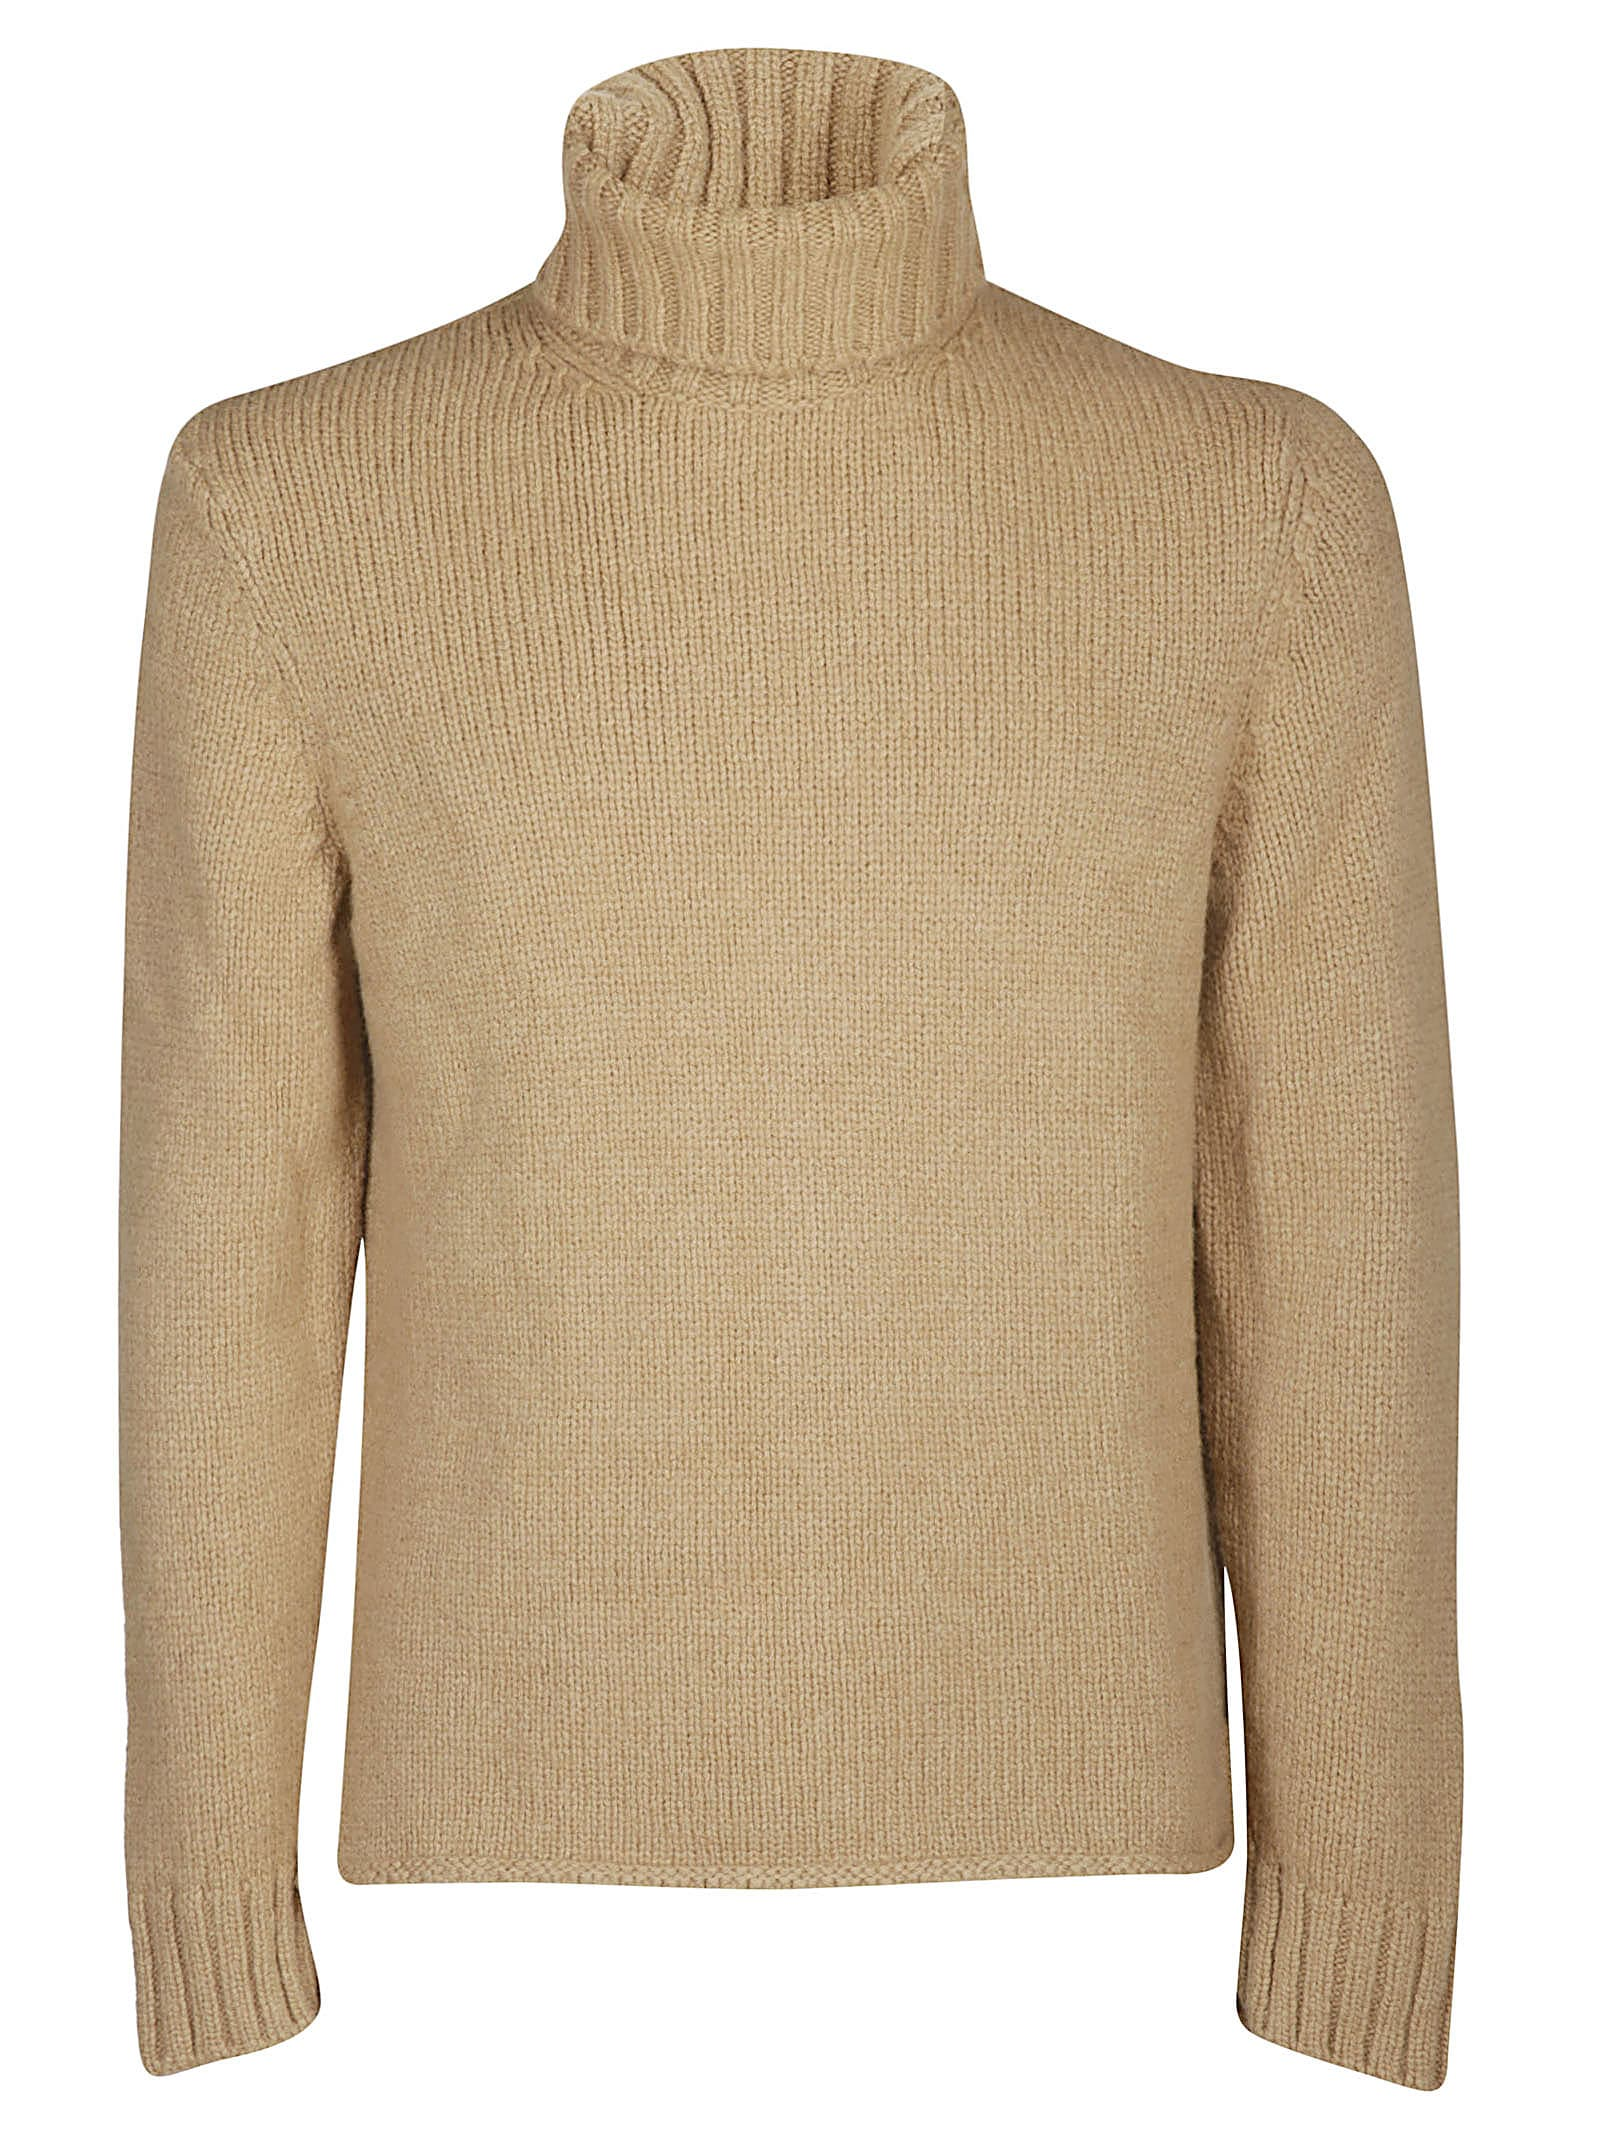 0714c288 Ermenegildo Zegna Wool Roll-neck Jumper